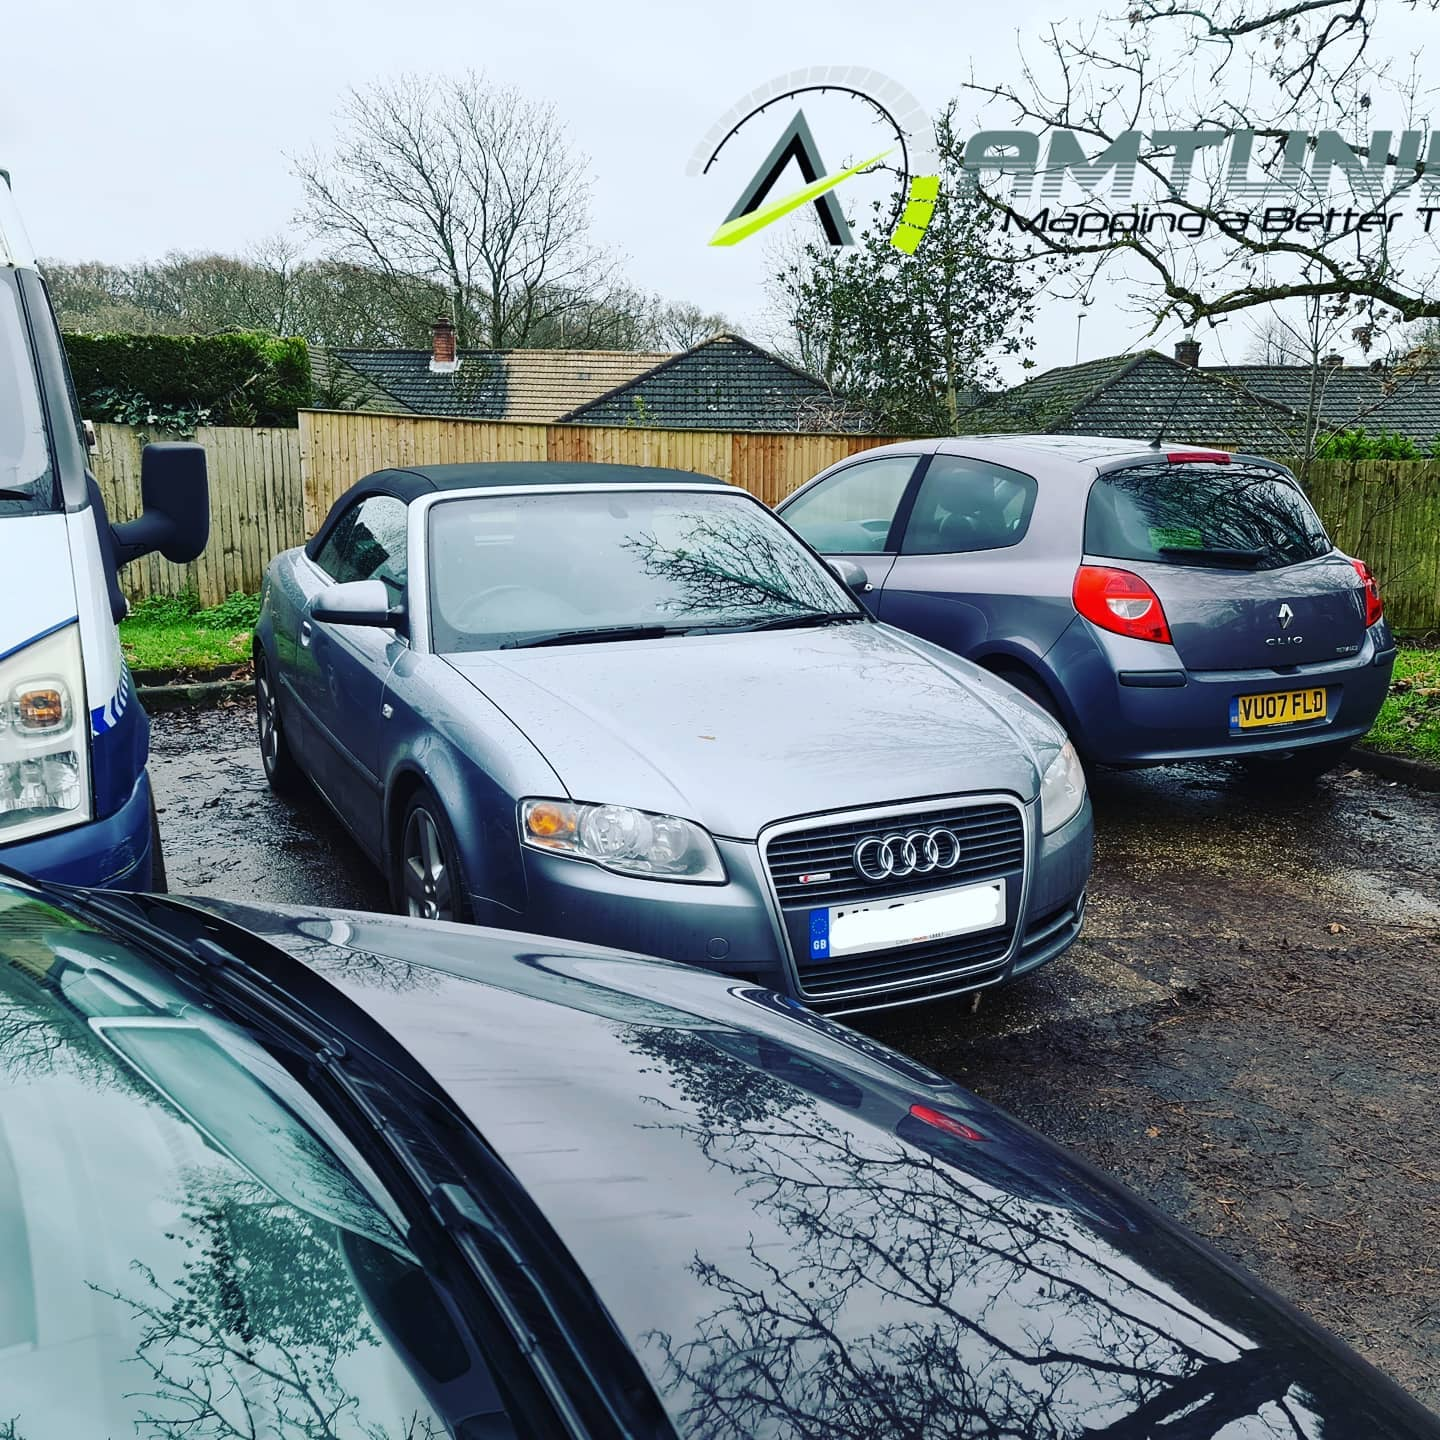 Audi A4 3.0TDI remapped in Portsmouth